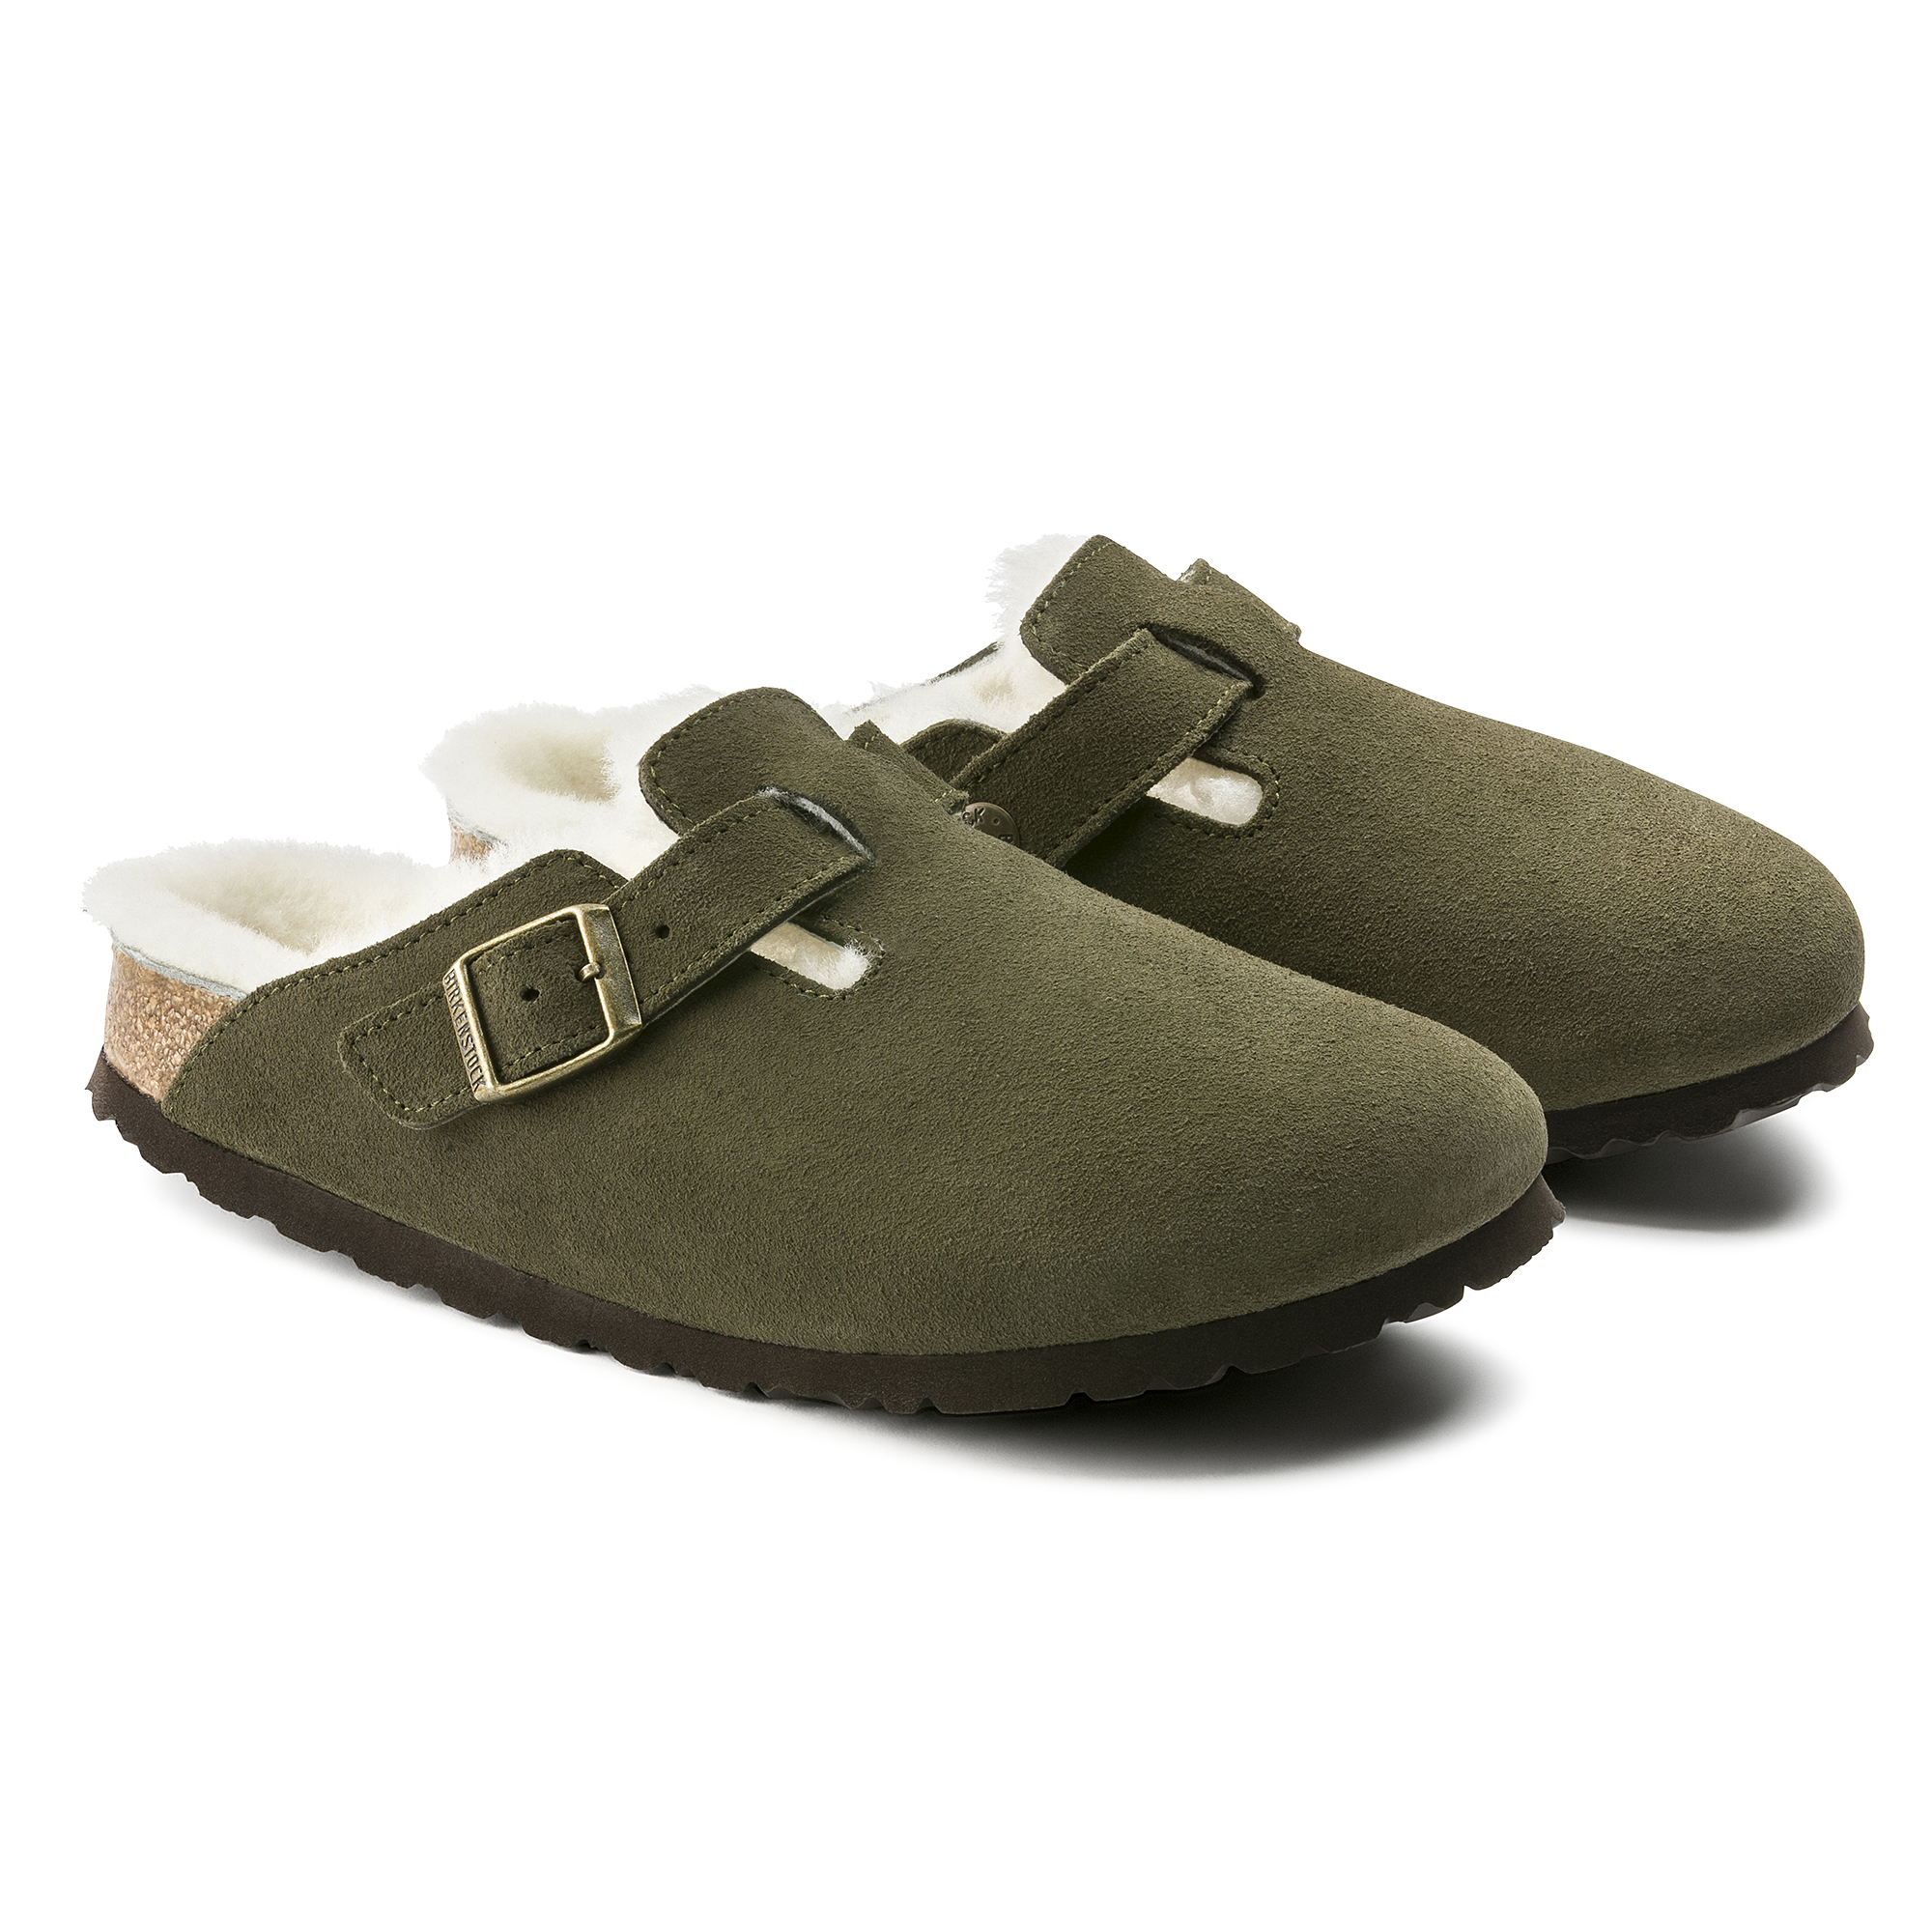 Birkenstock Boston Fell Forest Veloursleder